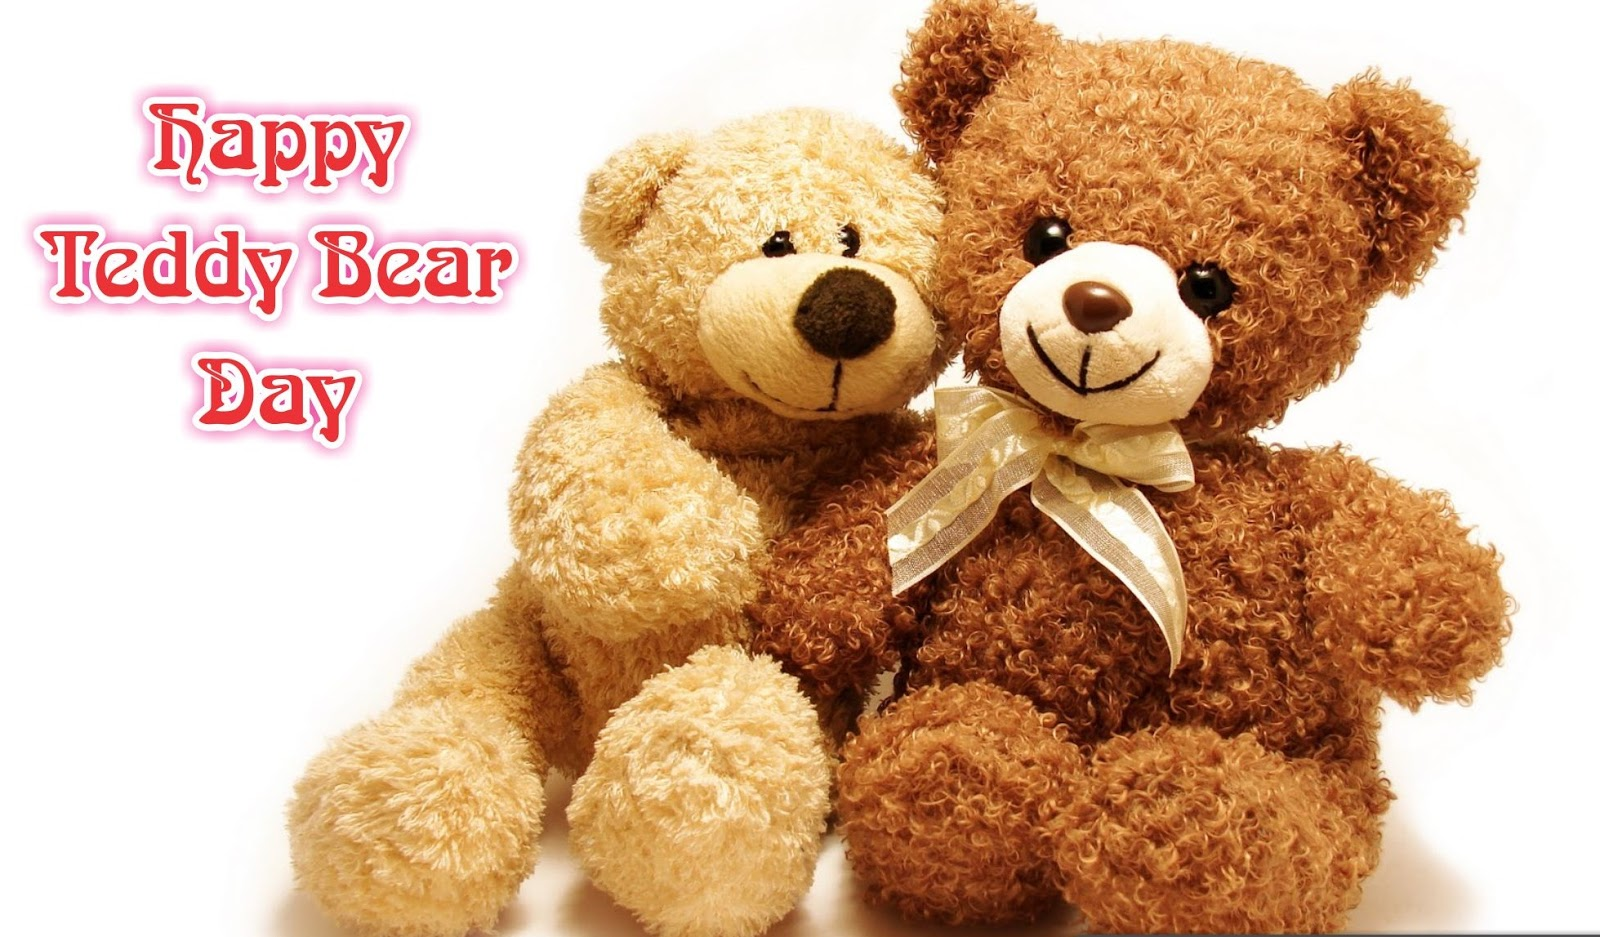 Happy Teddy Bear Day 2018 HD Image Free Download